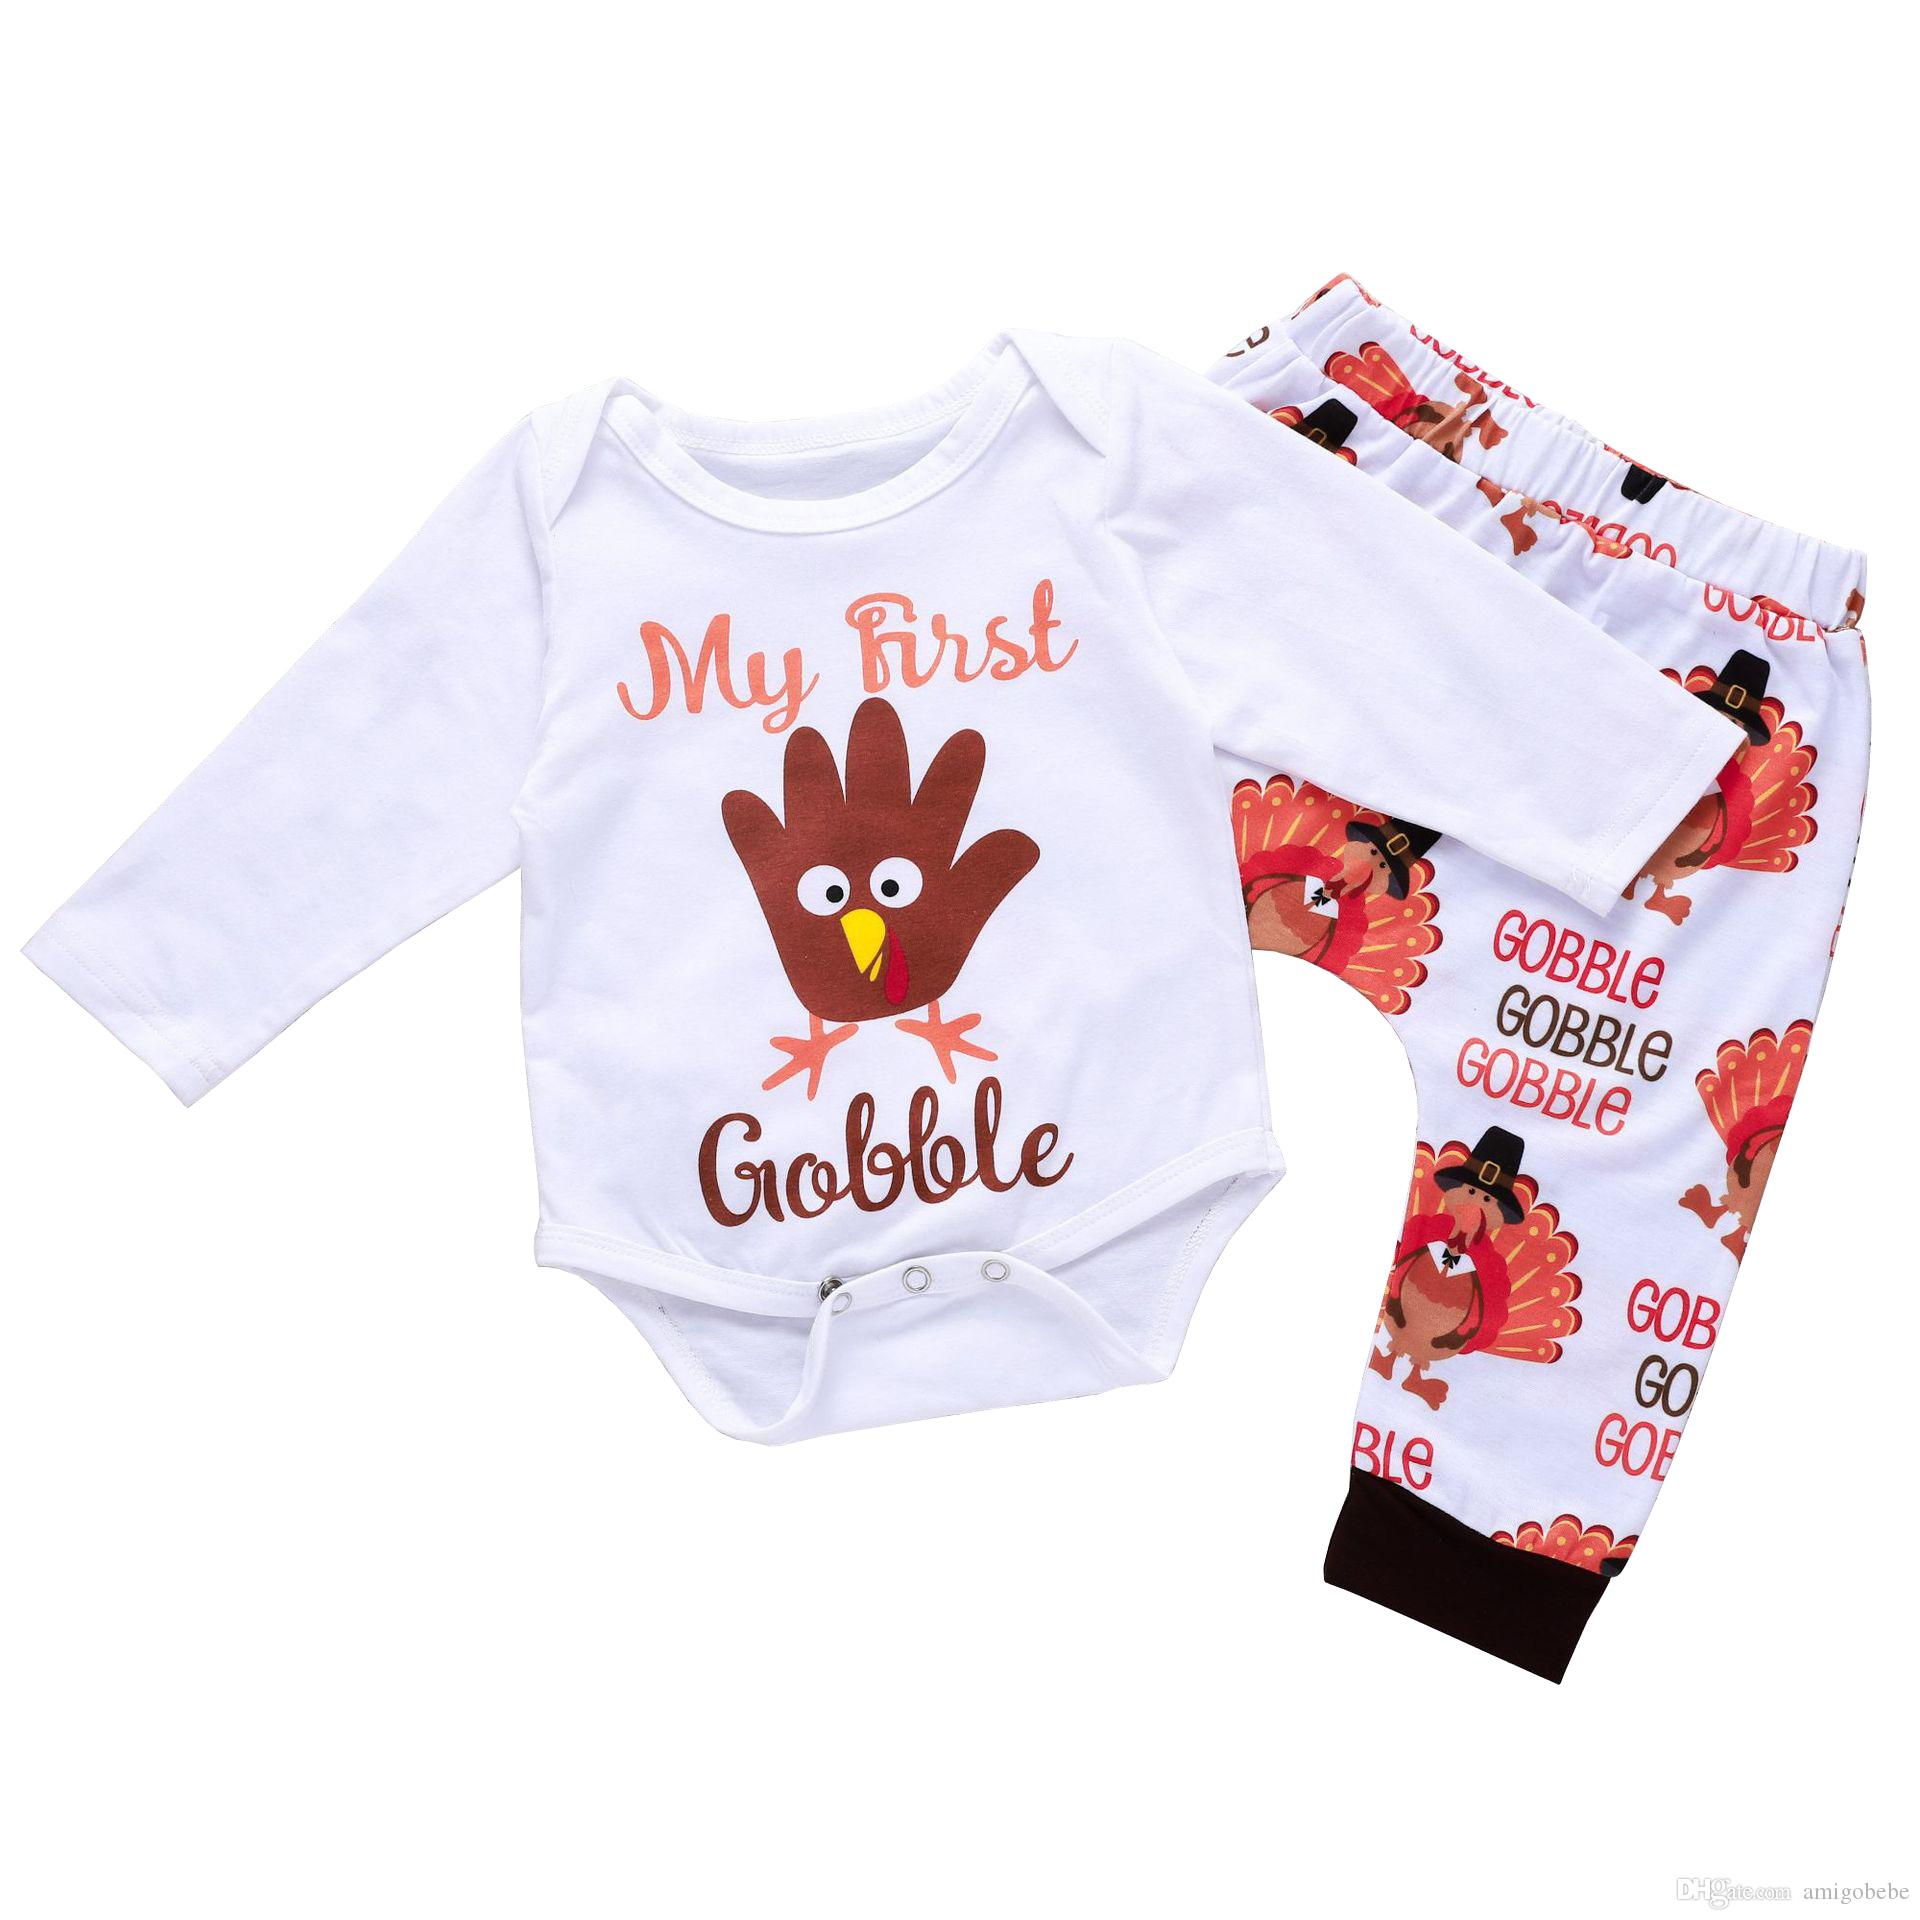 a104230b27806 2019 Floral Pig Baby Onesies Suits My First Turkey Gobble Printed Long  Sleeve Rompers Pants Thanksgiving Day Kids Girls Boys Autumn Outfits 3 18M  From ...